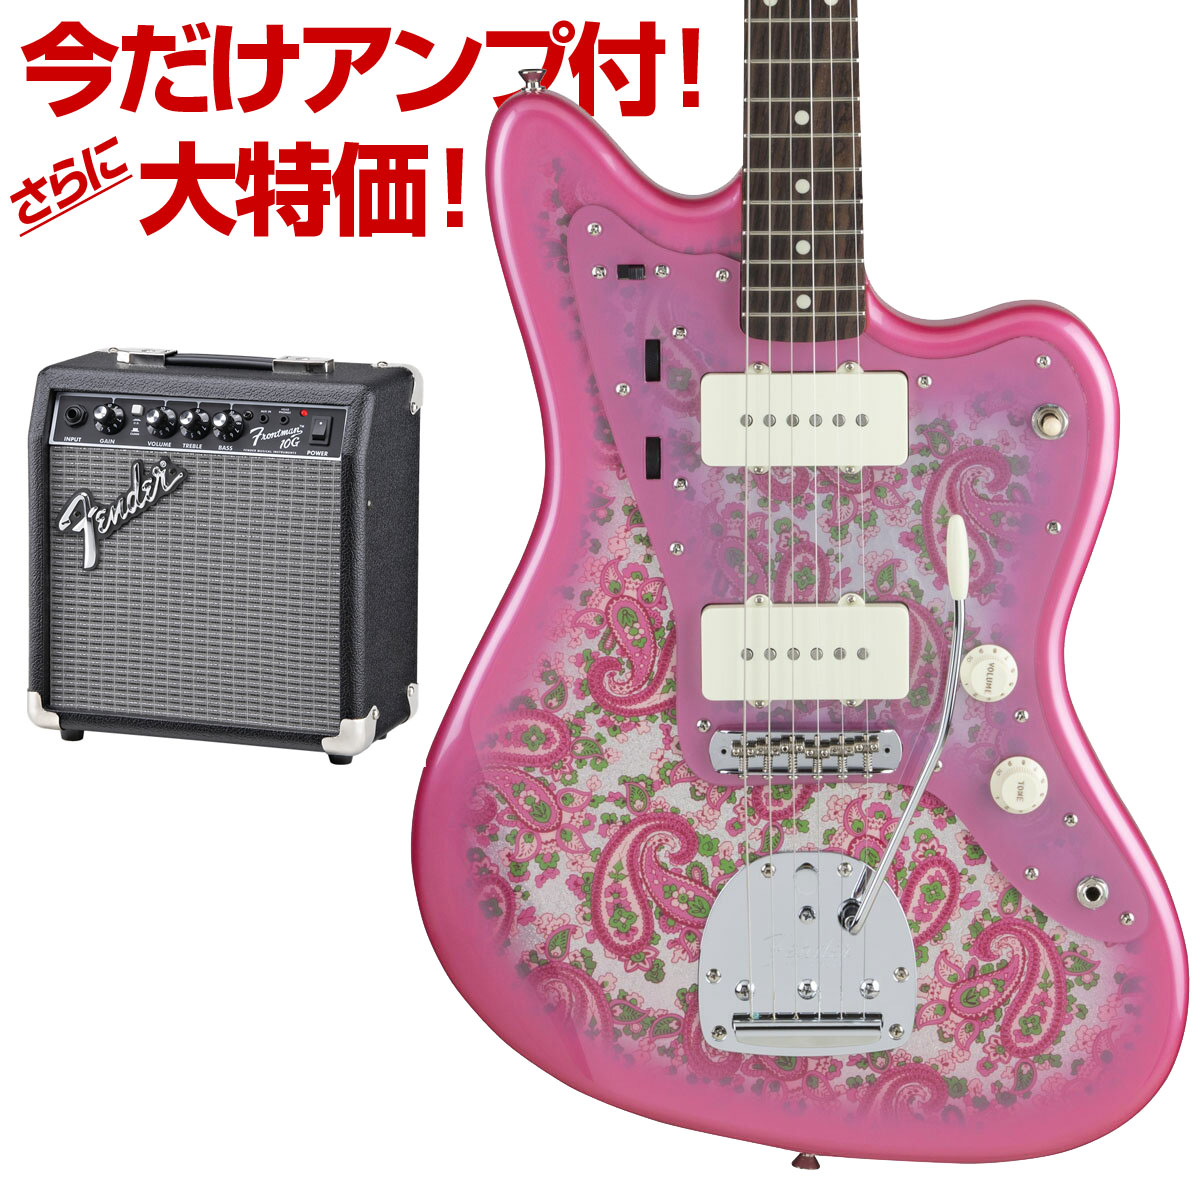 Fender / Made in Japan Traditional 60s Jazzmaster Rosewood Fingerboard Pink Paisley 【アウトレット新品特価】《数量限定アンプセット》